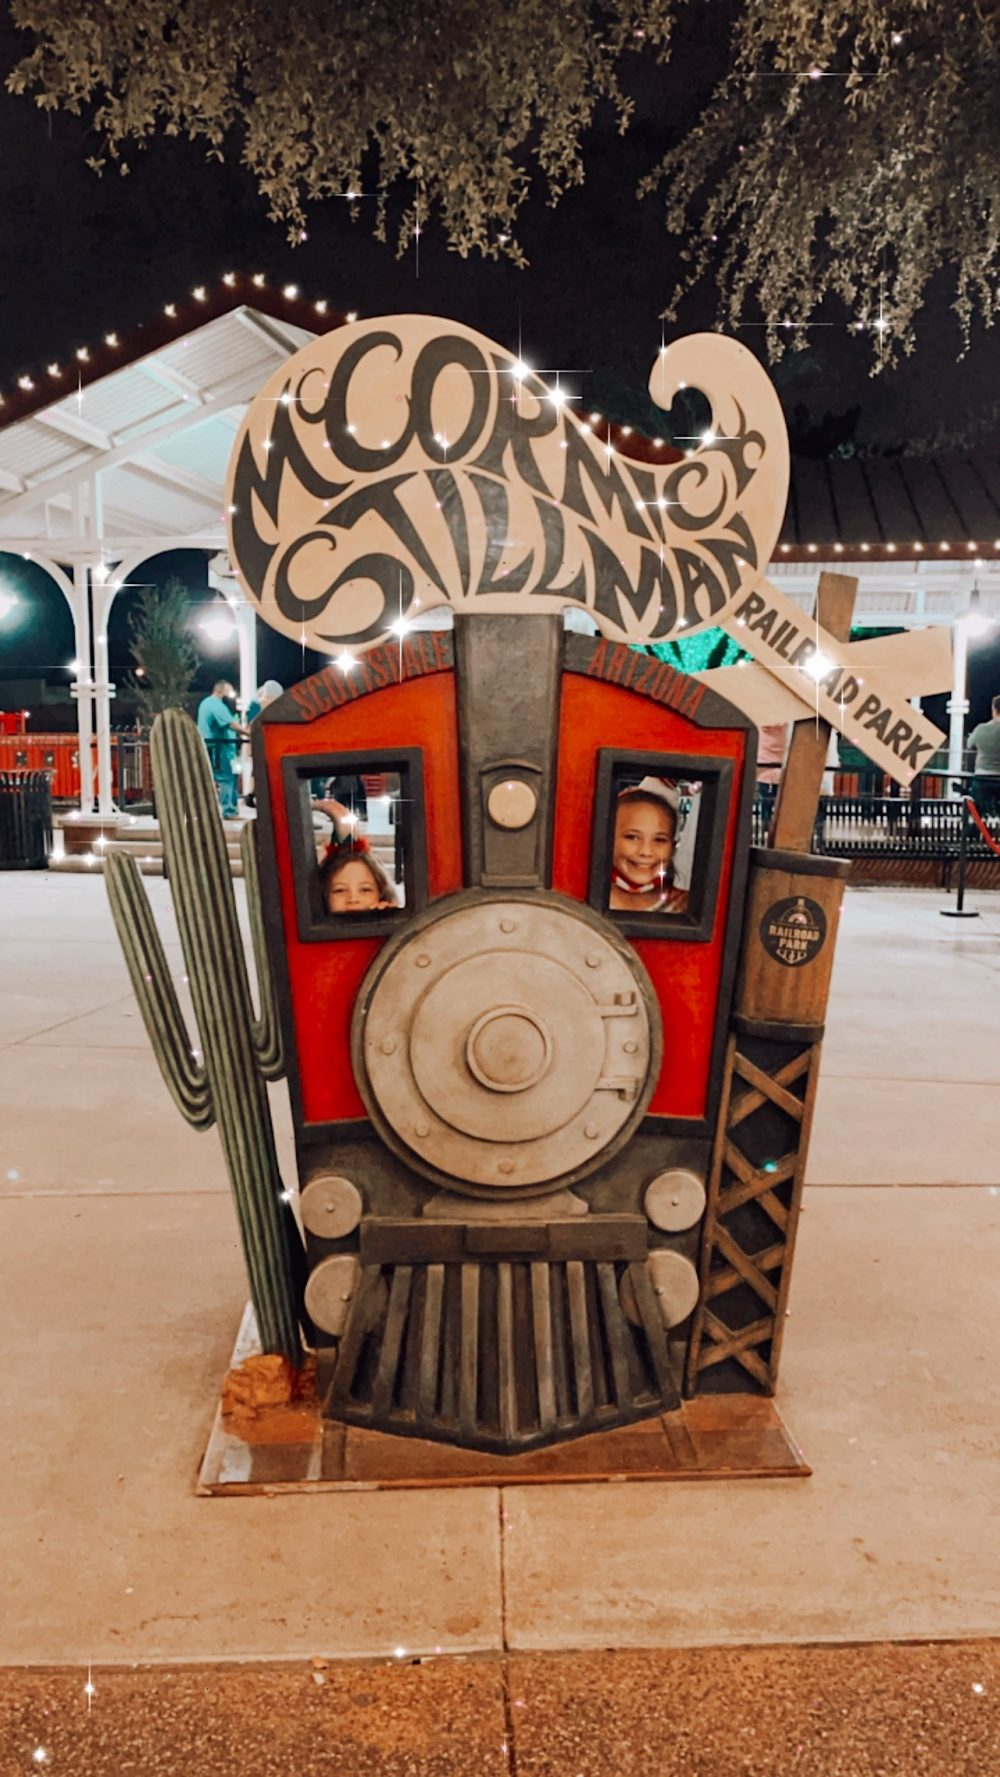 One of the Best Secret Winter Sun Destinations, Scottsdale Arizona. Family-friendly Holiday Lights train at McCormick-Stillman Railroad park |Guide by popular Florida travel blog, Fresh Mommy Blog: image of two girls sticking their faces through a railroad train cutout.